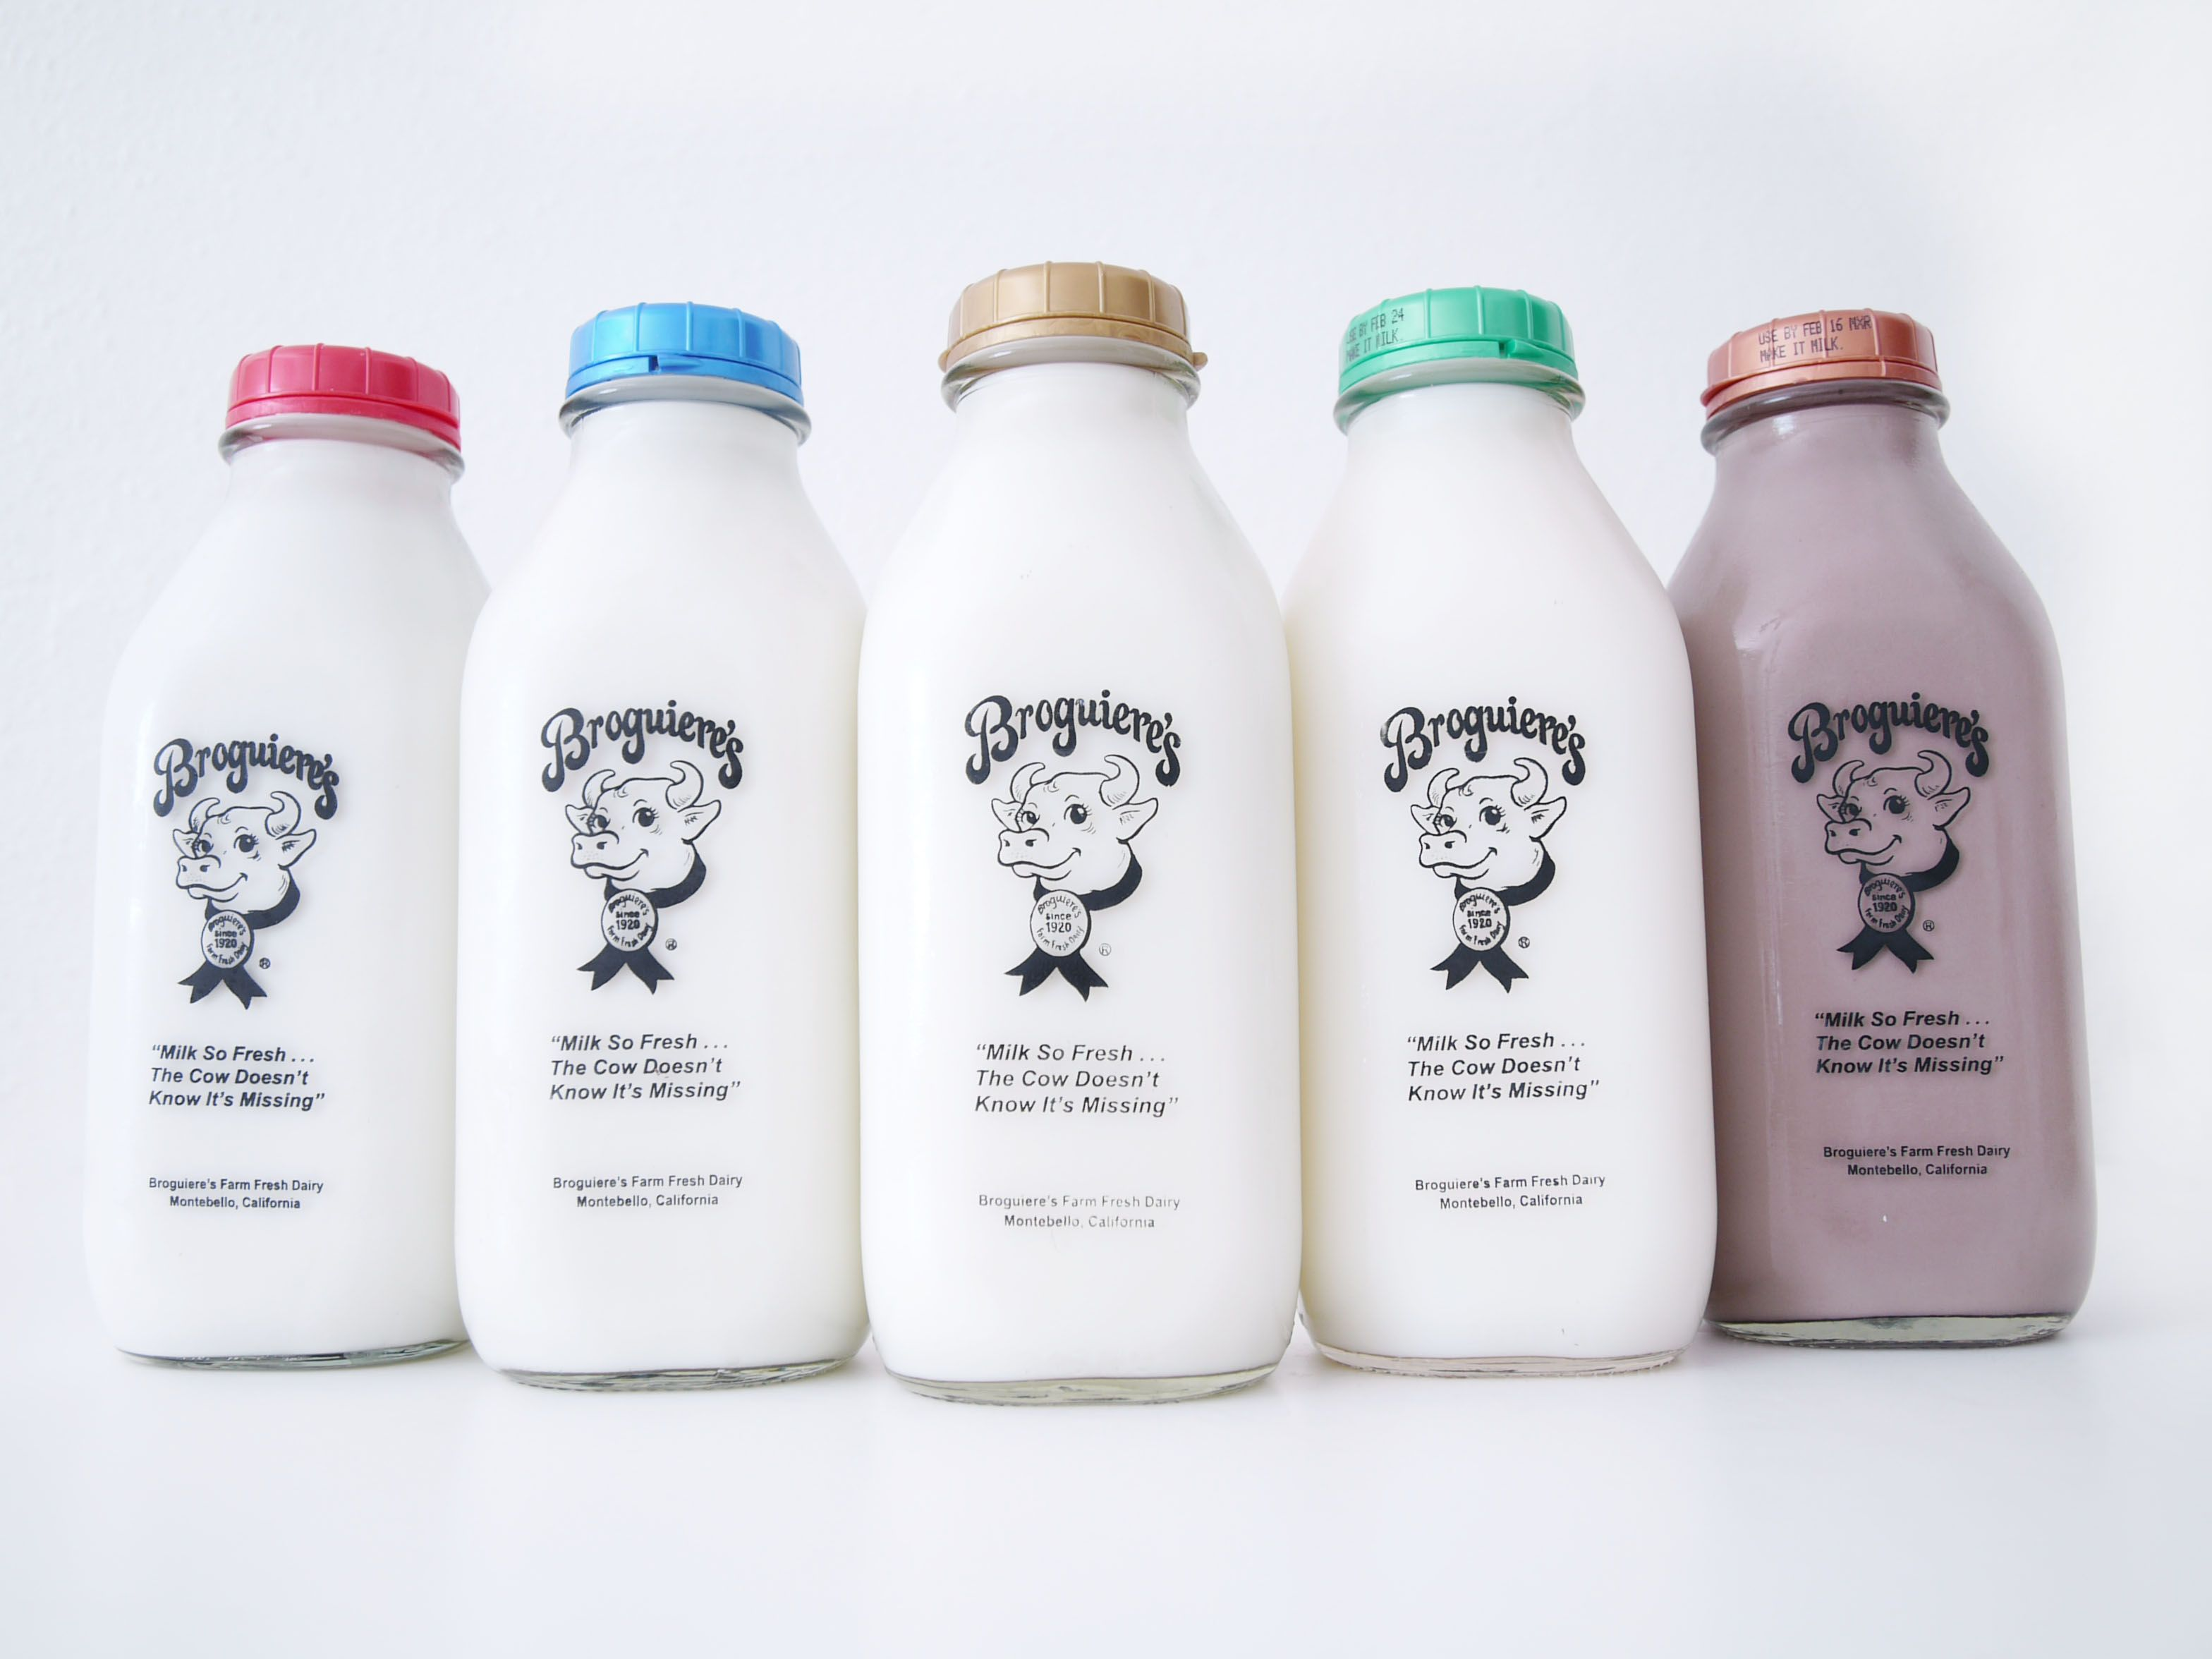 The BEST Chocolate Milk and Egg Nog.  Ever. | Broguiere's Dairy | 505 South Maple Avenue,  Montebello, California  90640